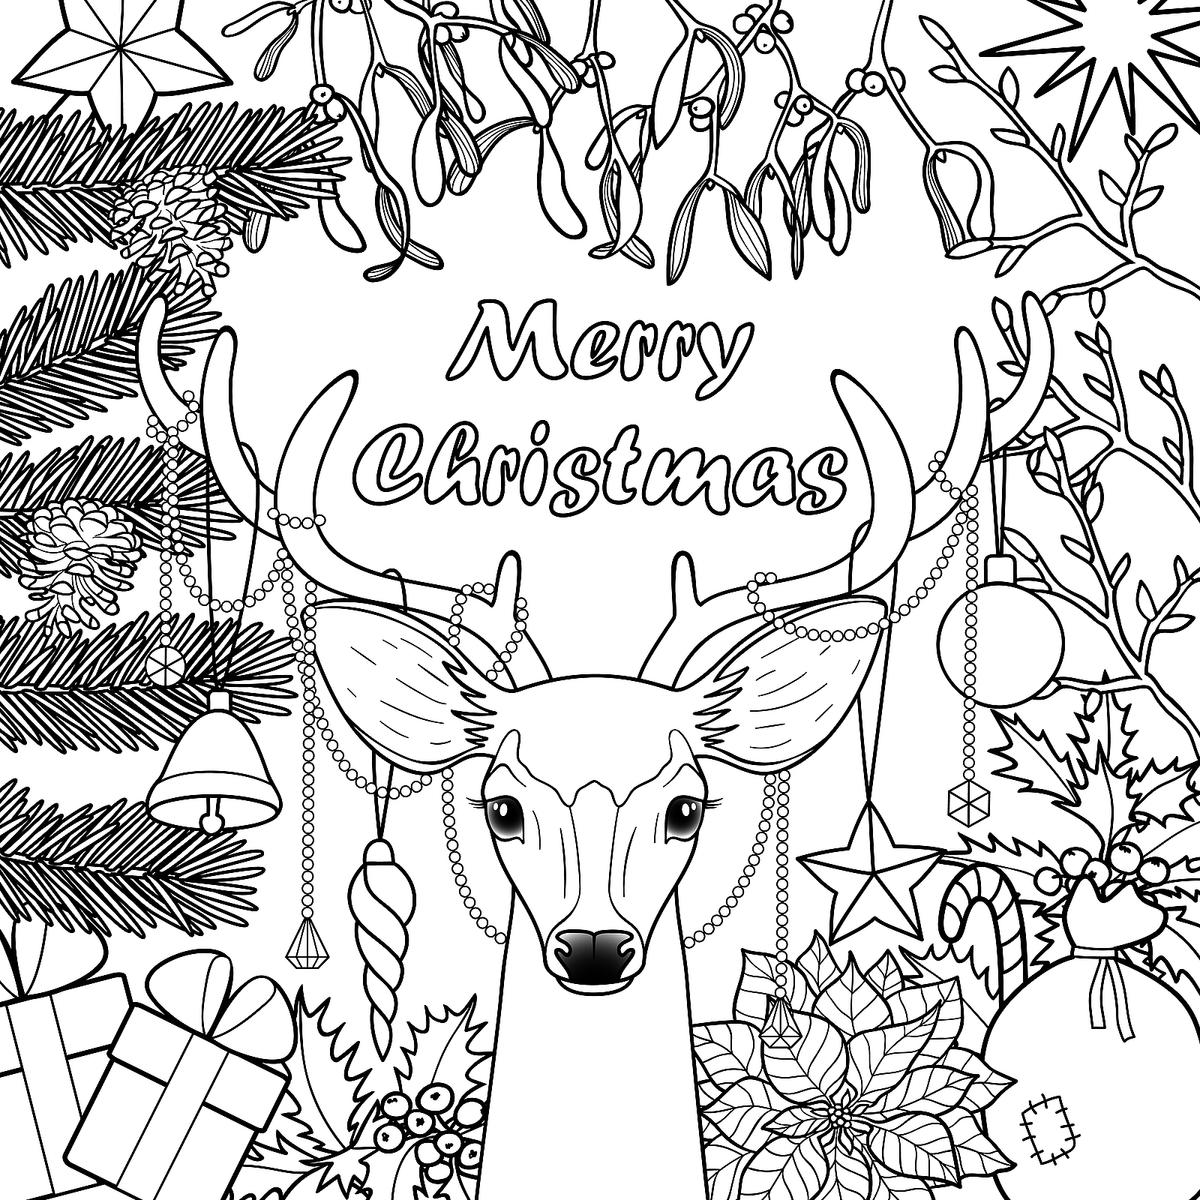 istmas coloring pages - photo#30